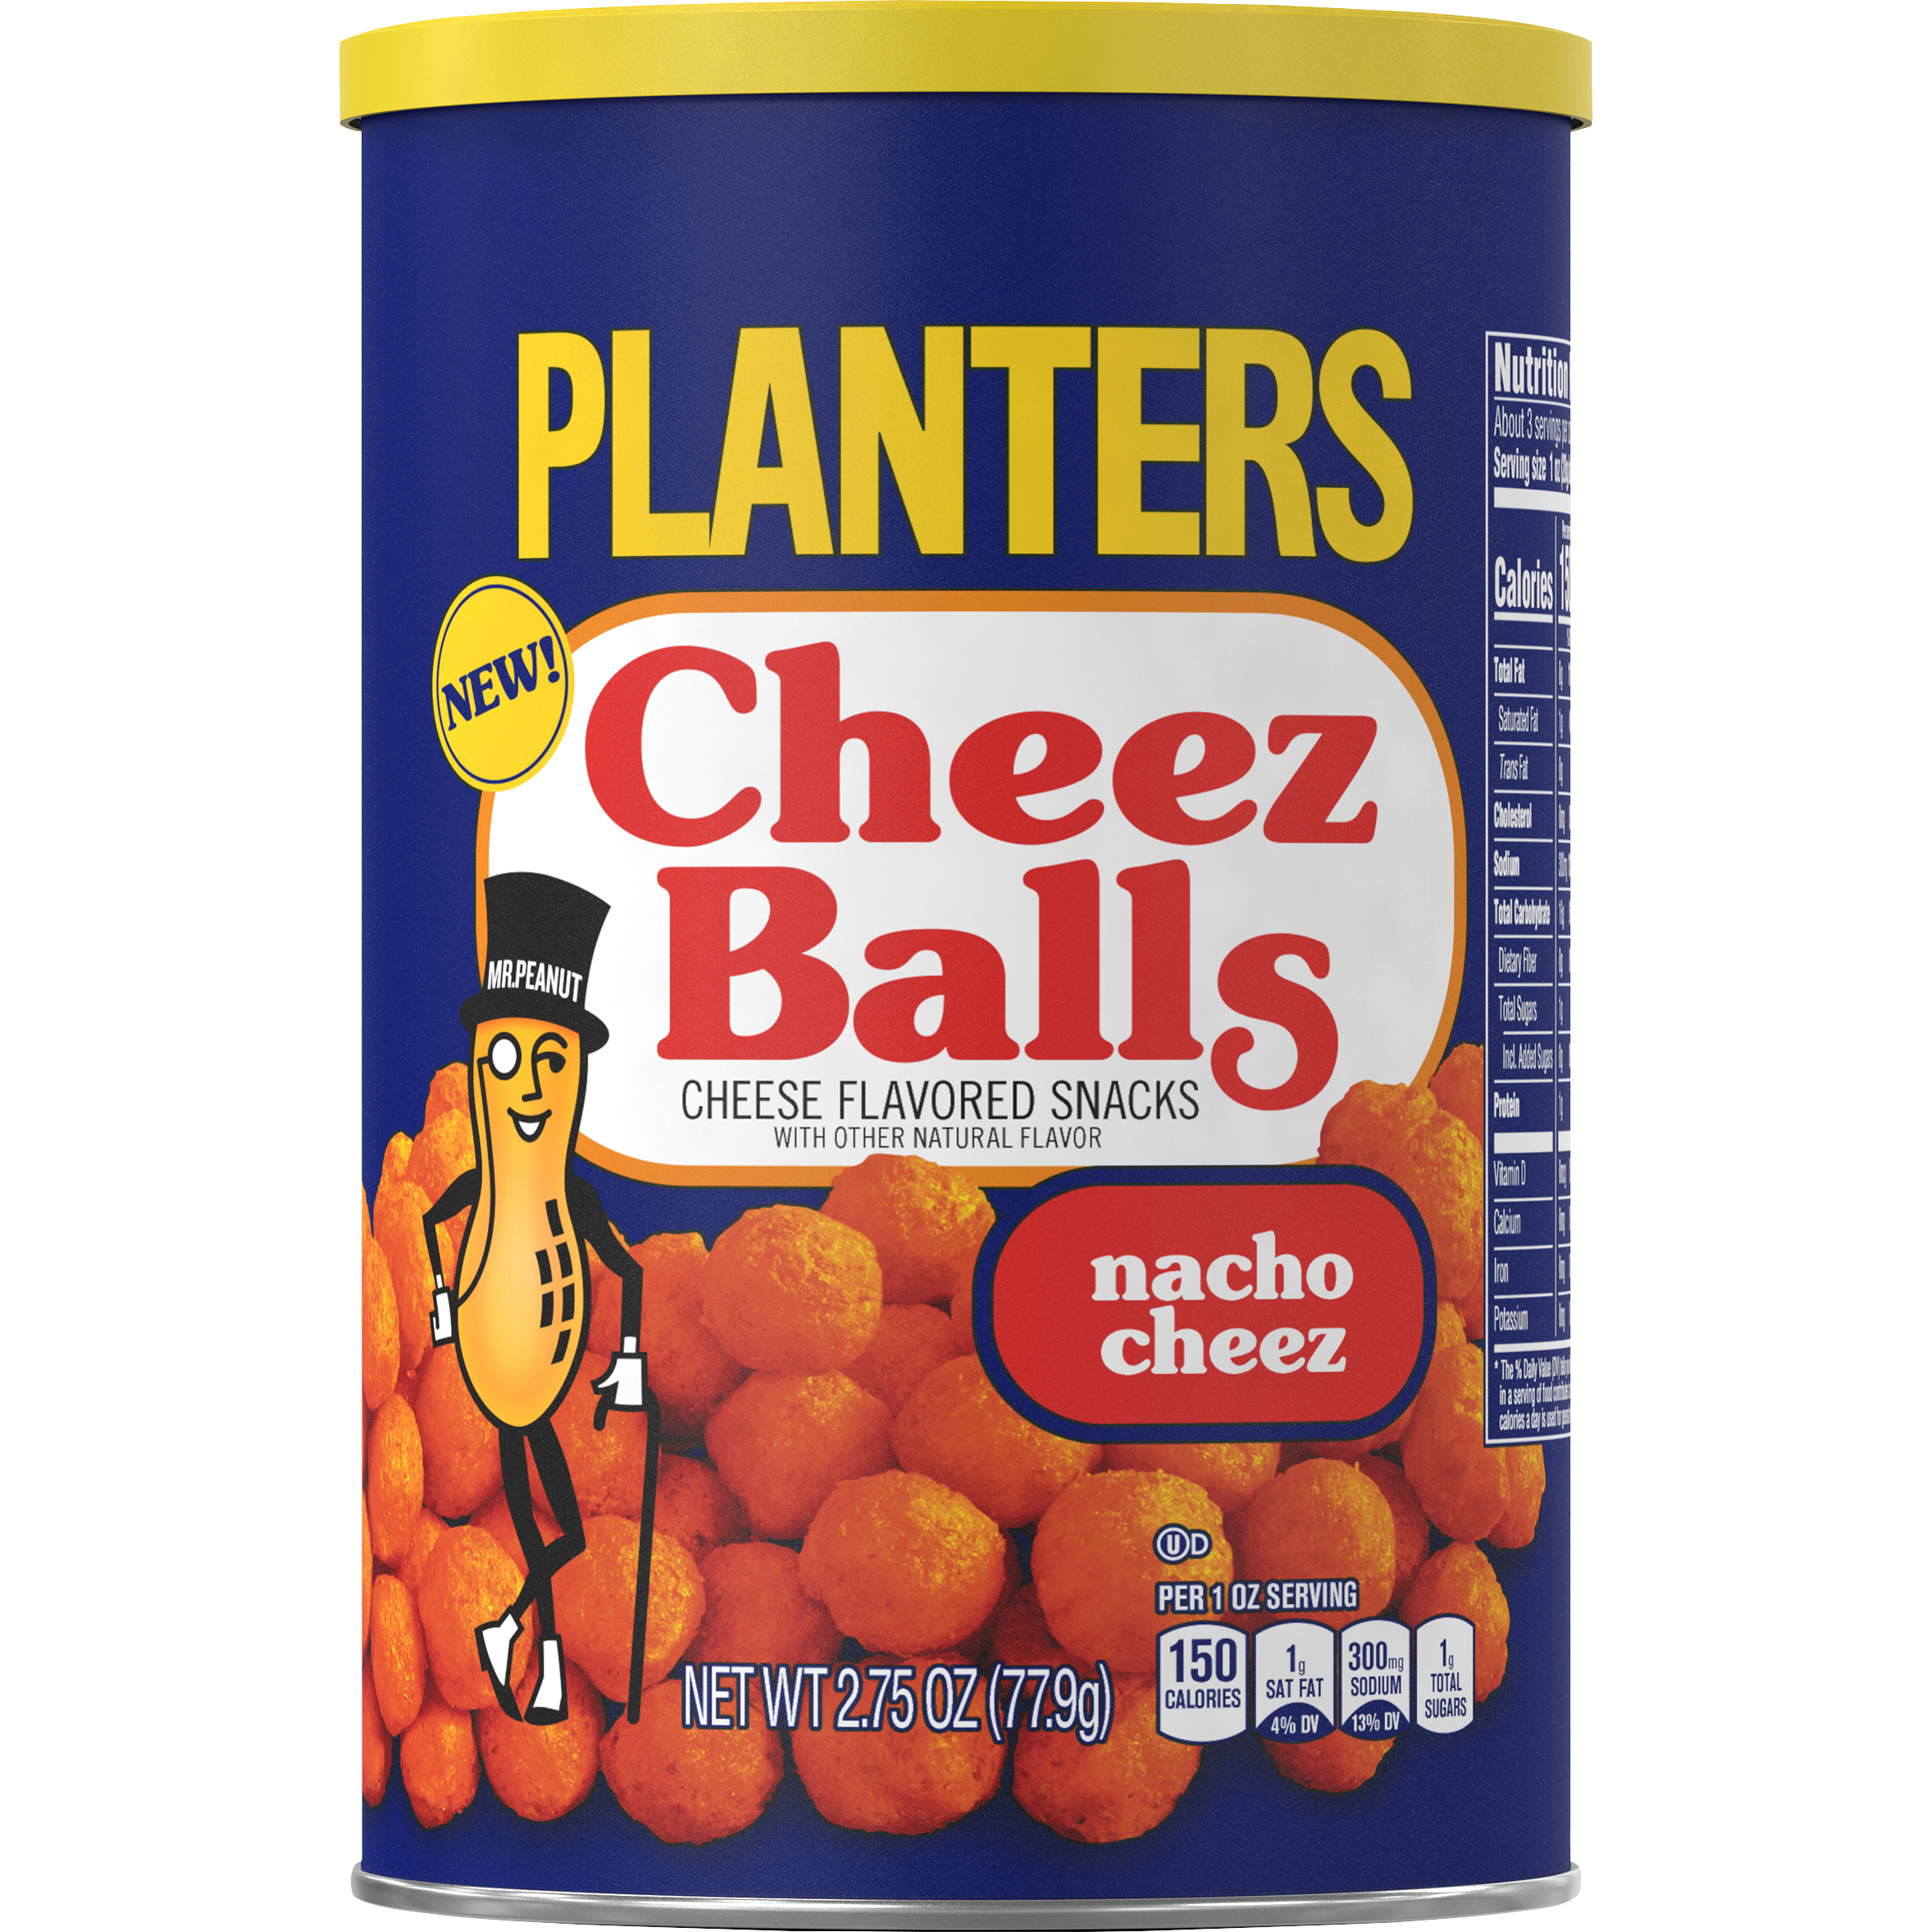 Planters Nacho Cheez Balls, 2.75oz Canister image